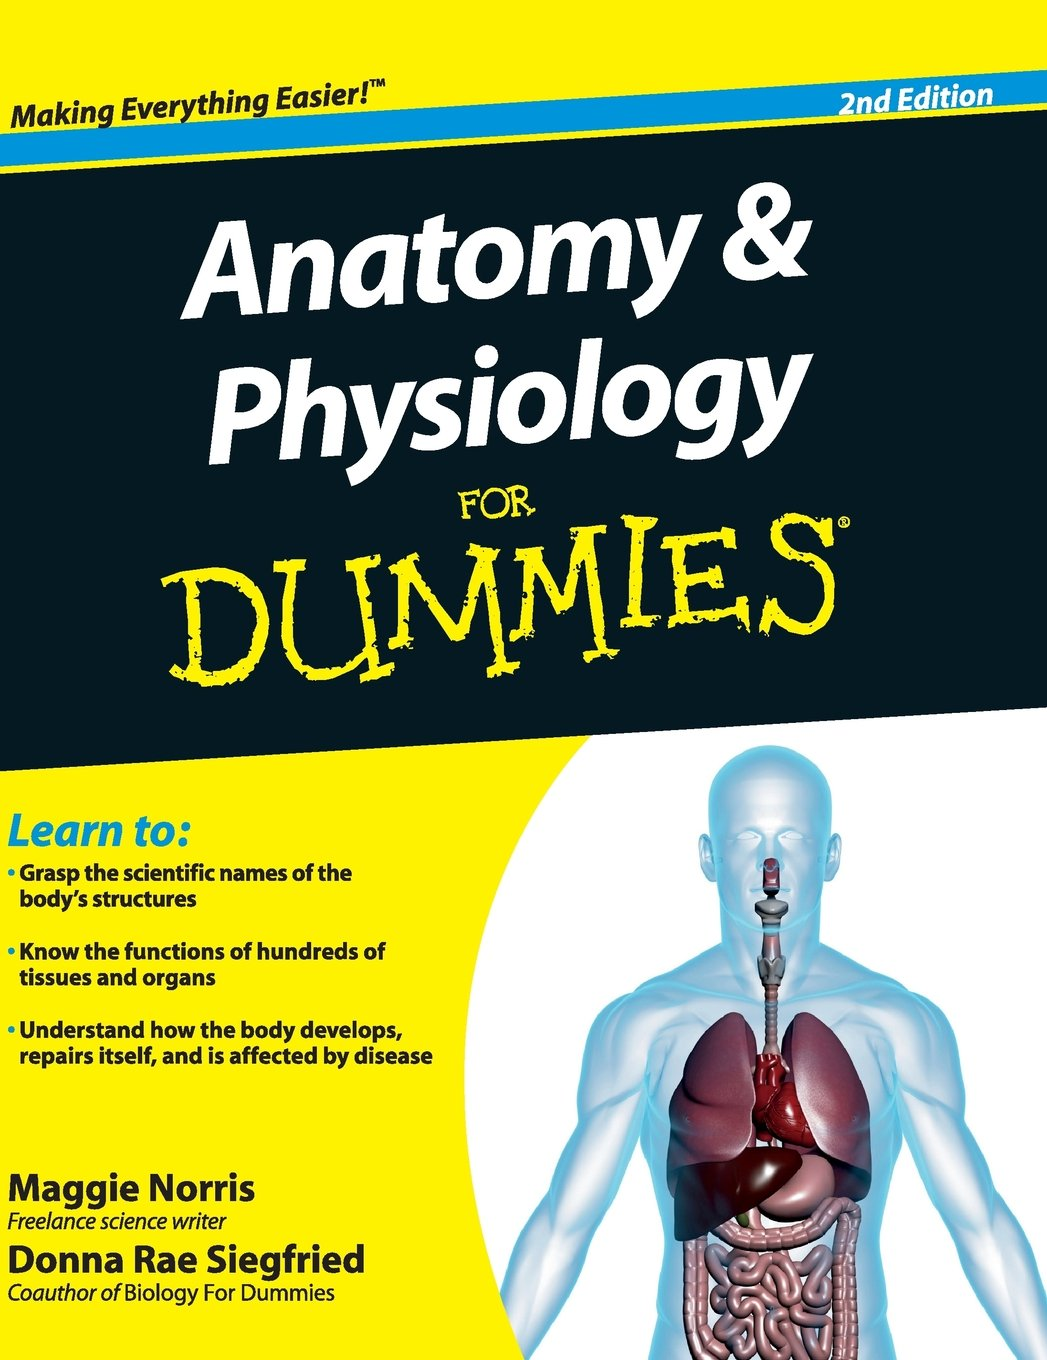 Anatomy and Physiology for Dummies: Amazon.co.uk: Maggie A Norris ...